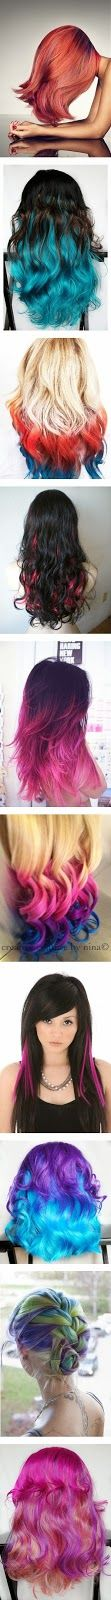 Colorful Hair Style